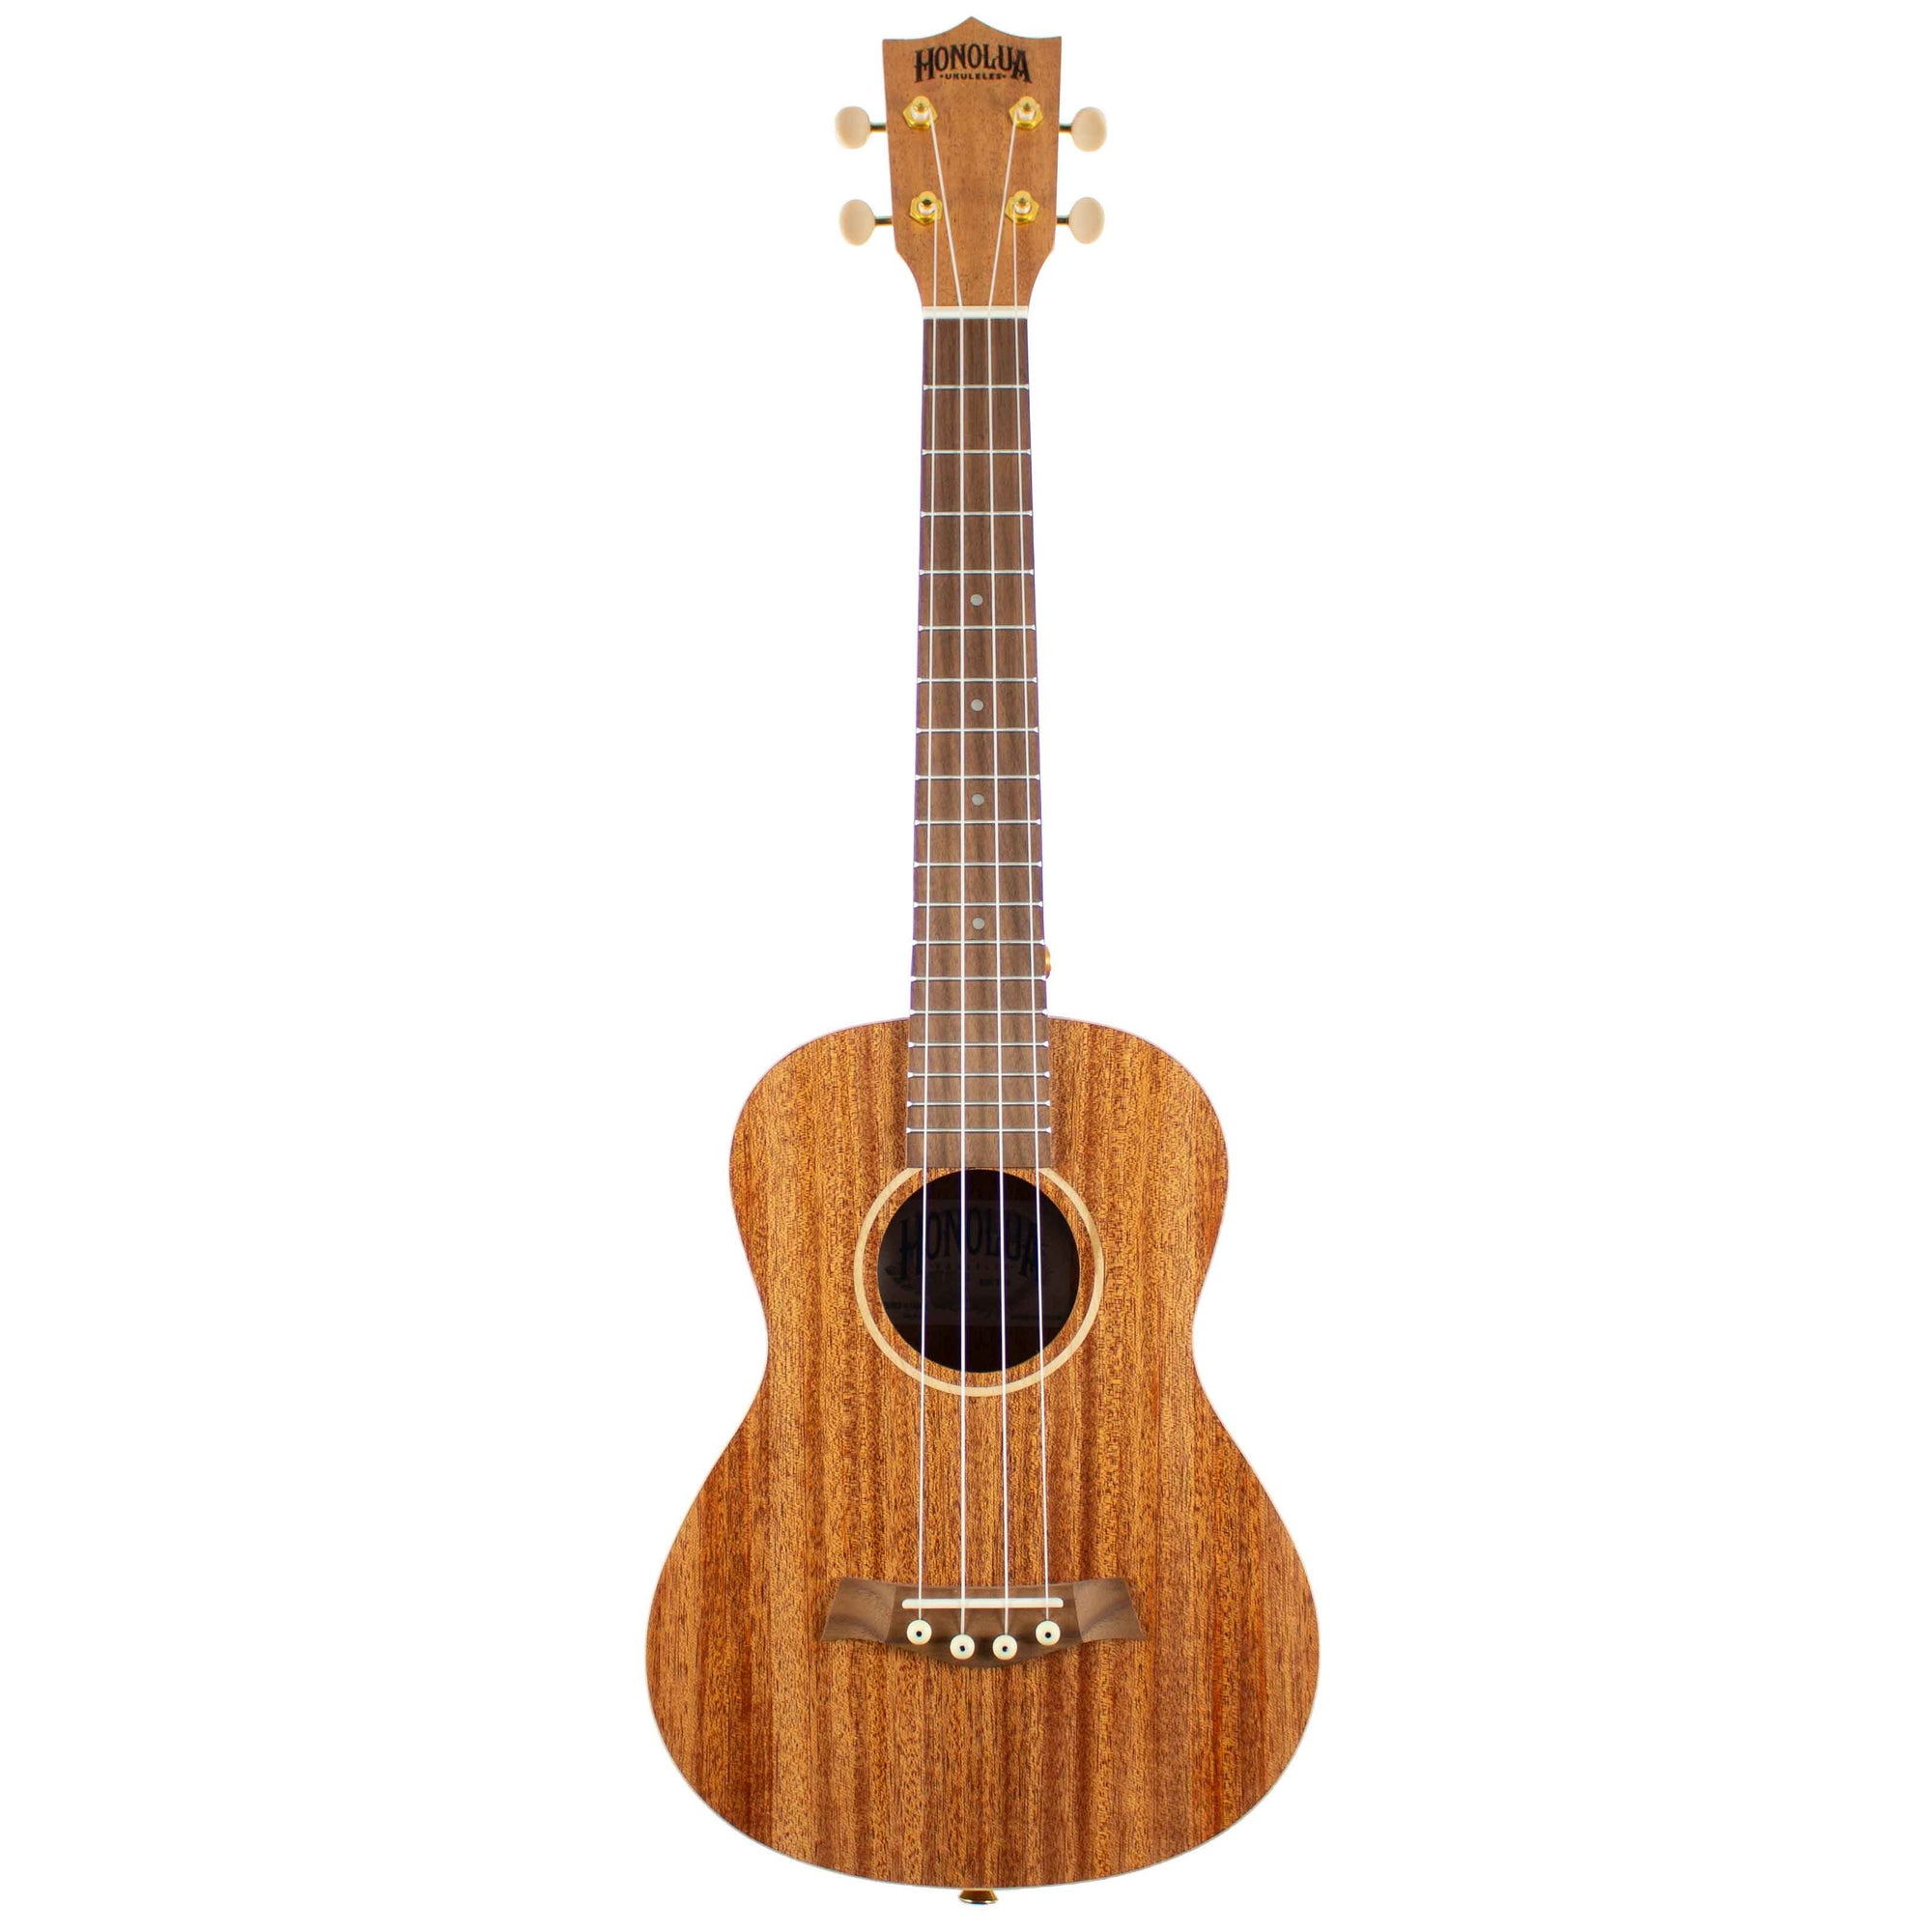 Honolua Mano Tenor Ukulele MA-31 w/Bag